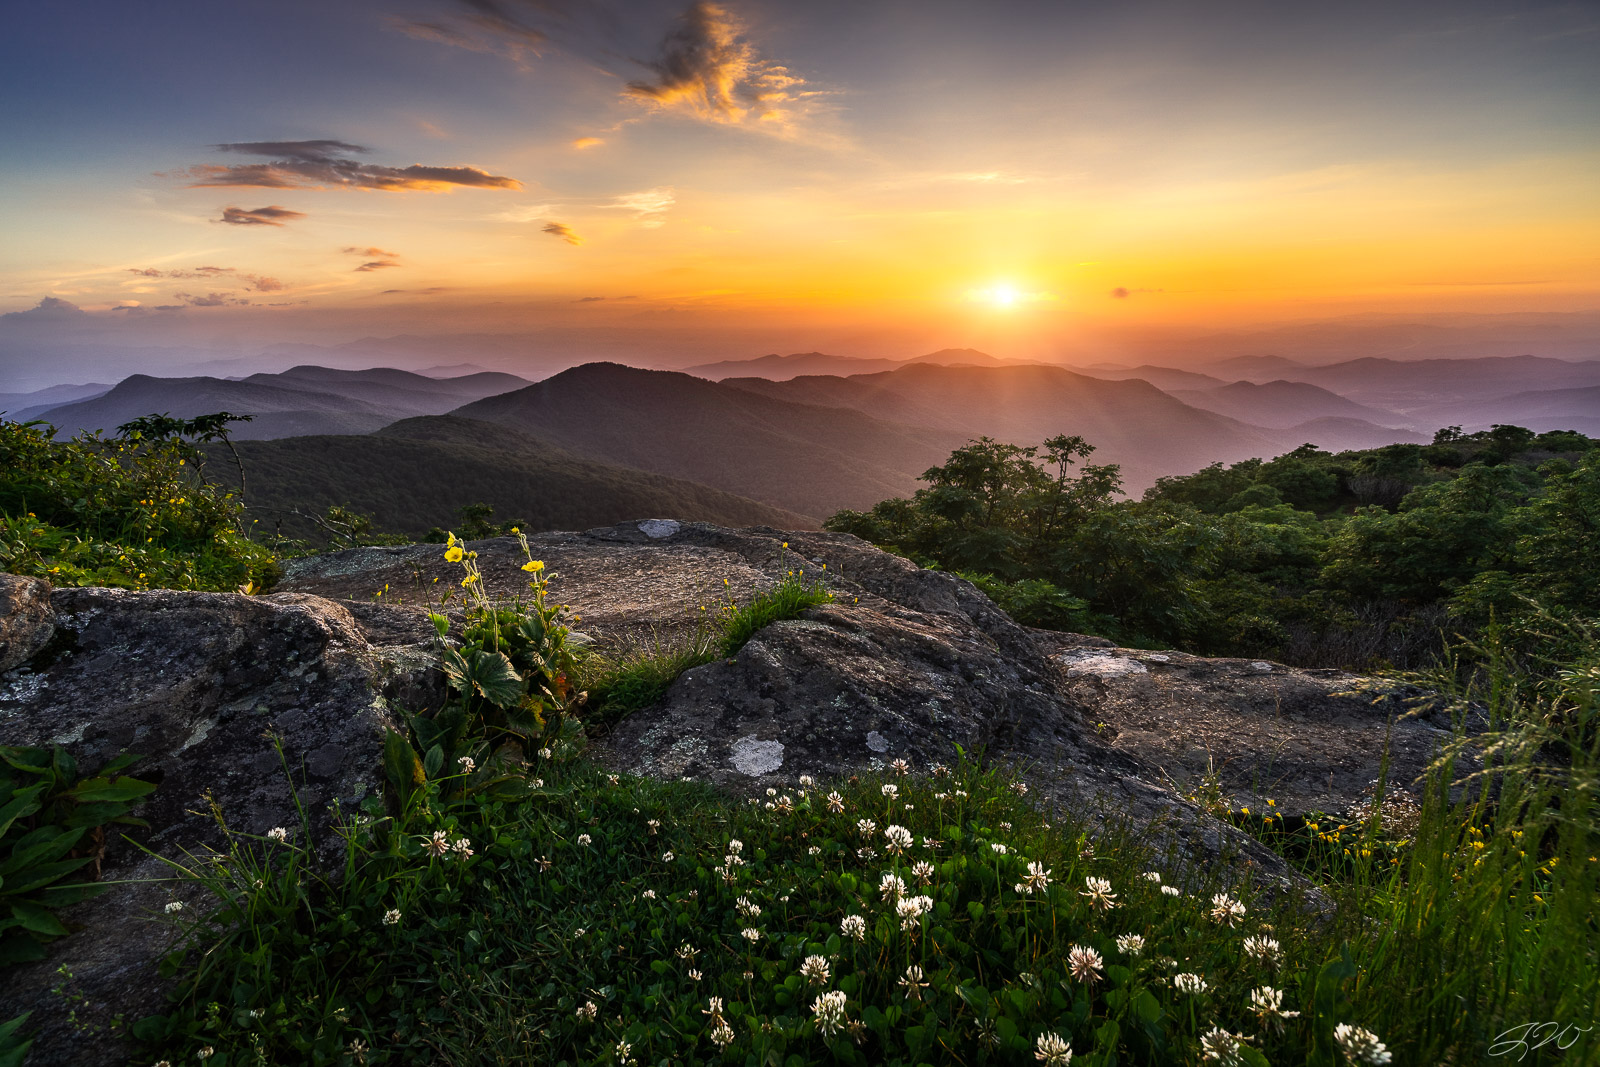 mountains, clover, flowers, craggy gardens, landscape, sunset, wildflowers, focus stacking, photo